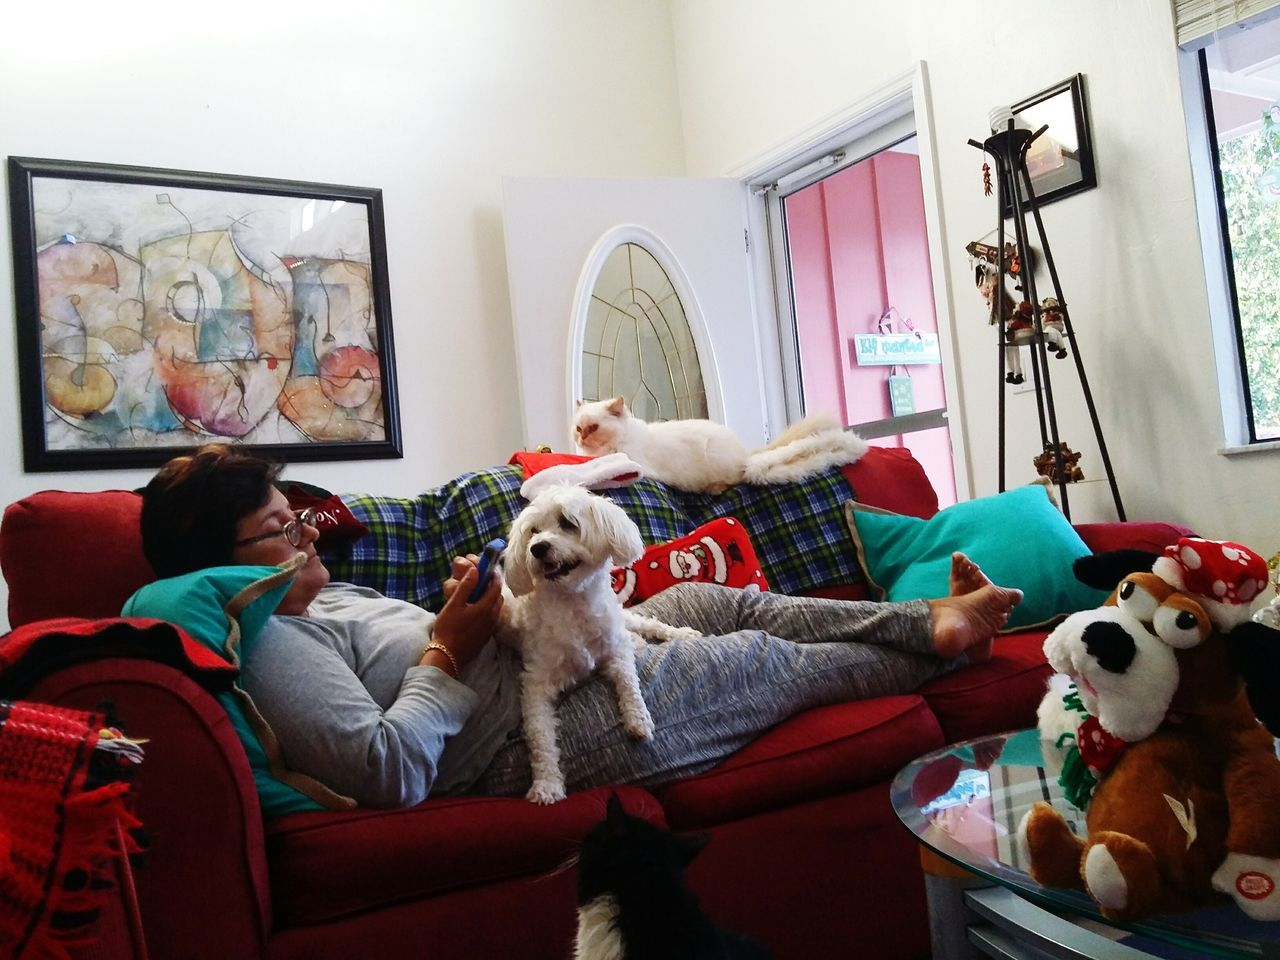 dog, indoors, pets, real people, togetherness, sofa, domestic animals, lifestyles, mammal, home interior, leisure activity, sitting, women, day